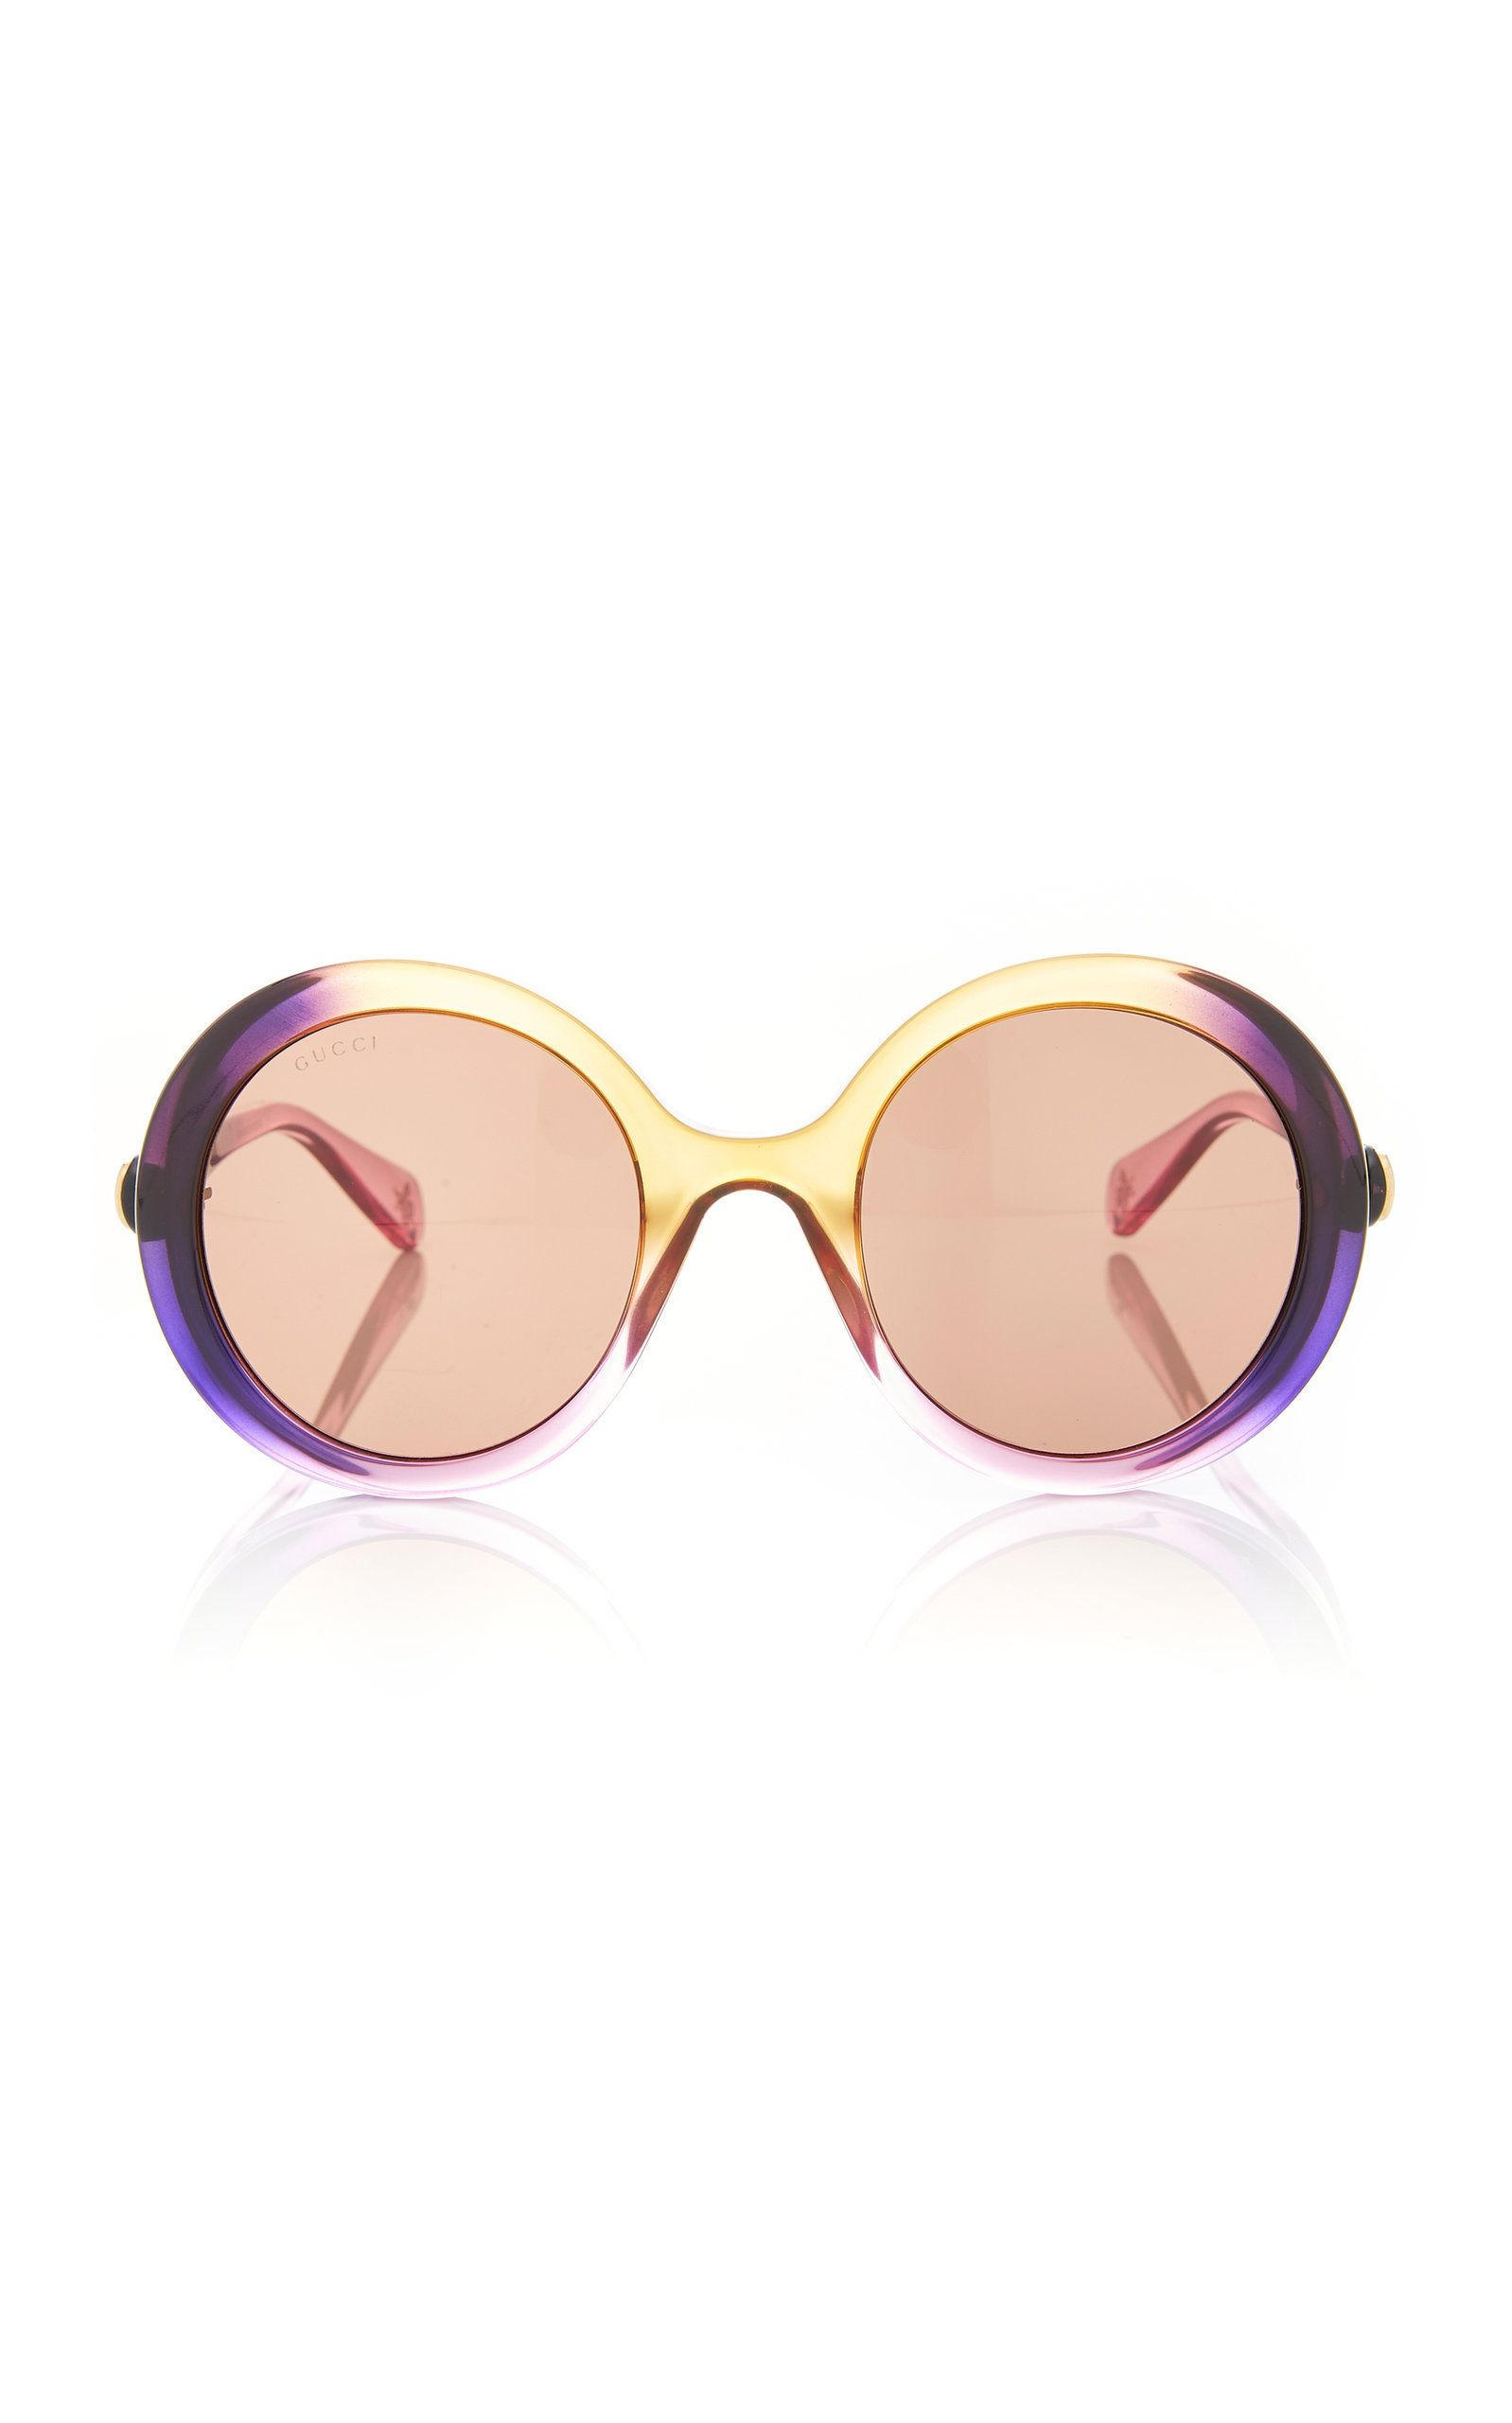 2cc22c82d06df Gucci s  Glamorous  sunglasses are designed from transparent multicolored  acetate with a retro-style oversized silhouette. Dark lenses add to their  allure ...